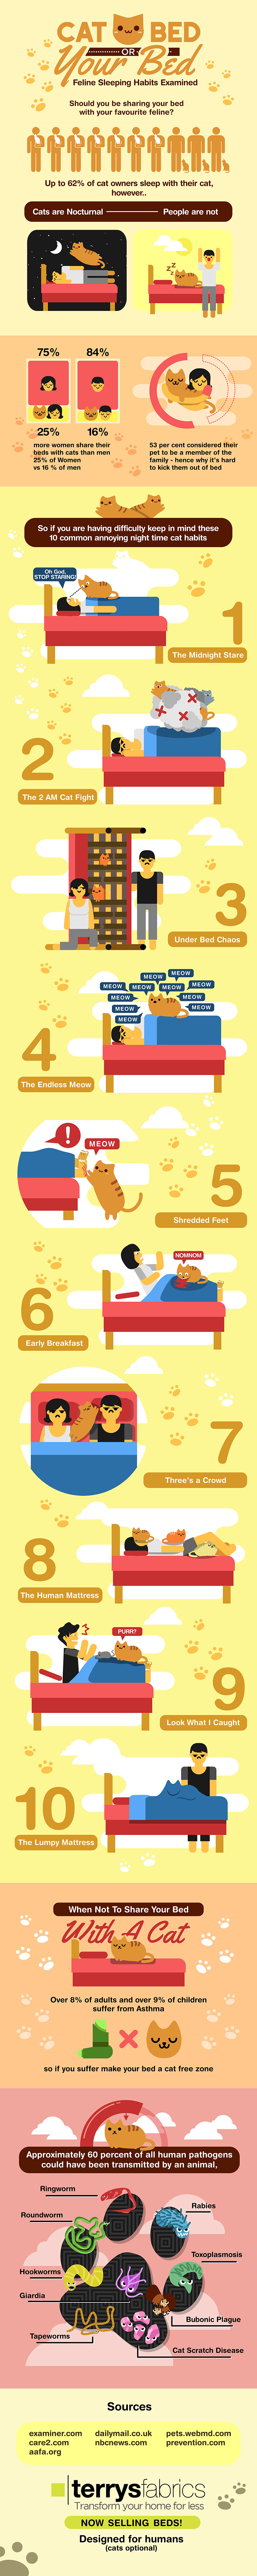 Should cats sleep in your bed? - infographic